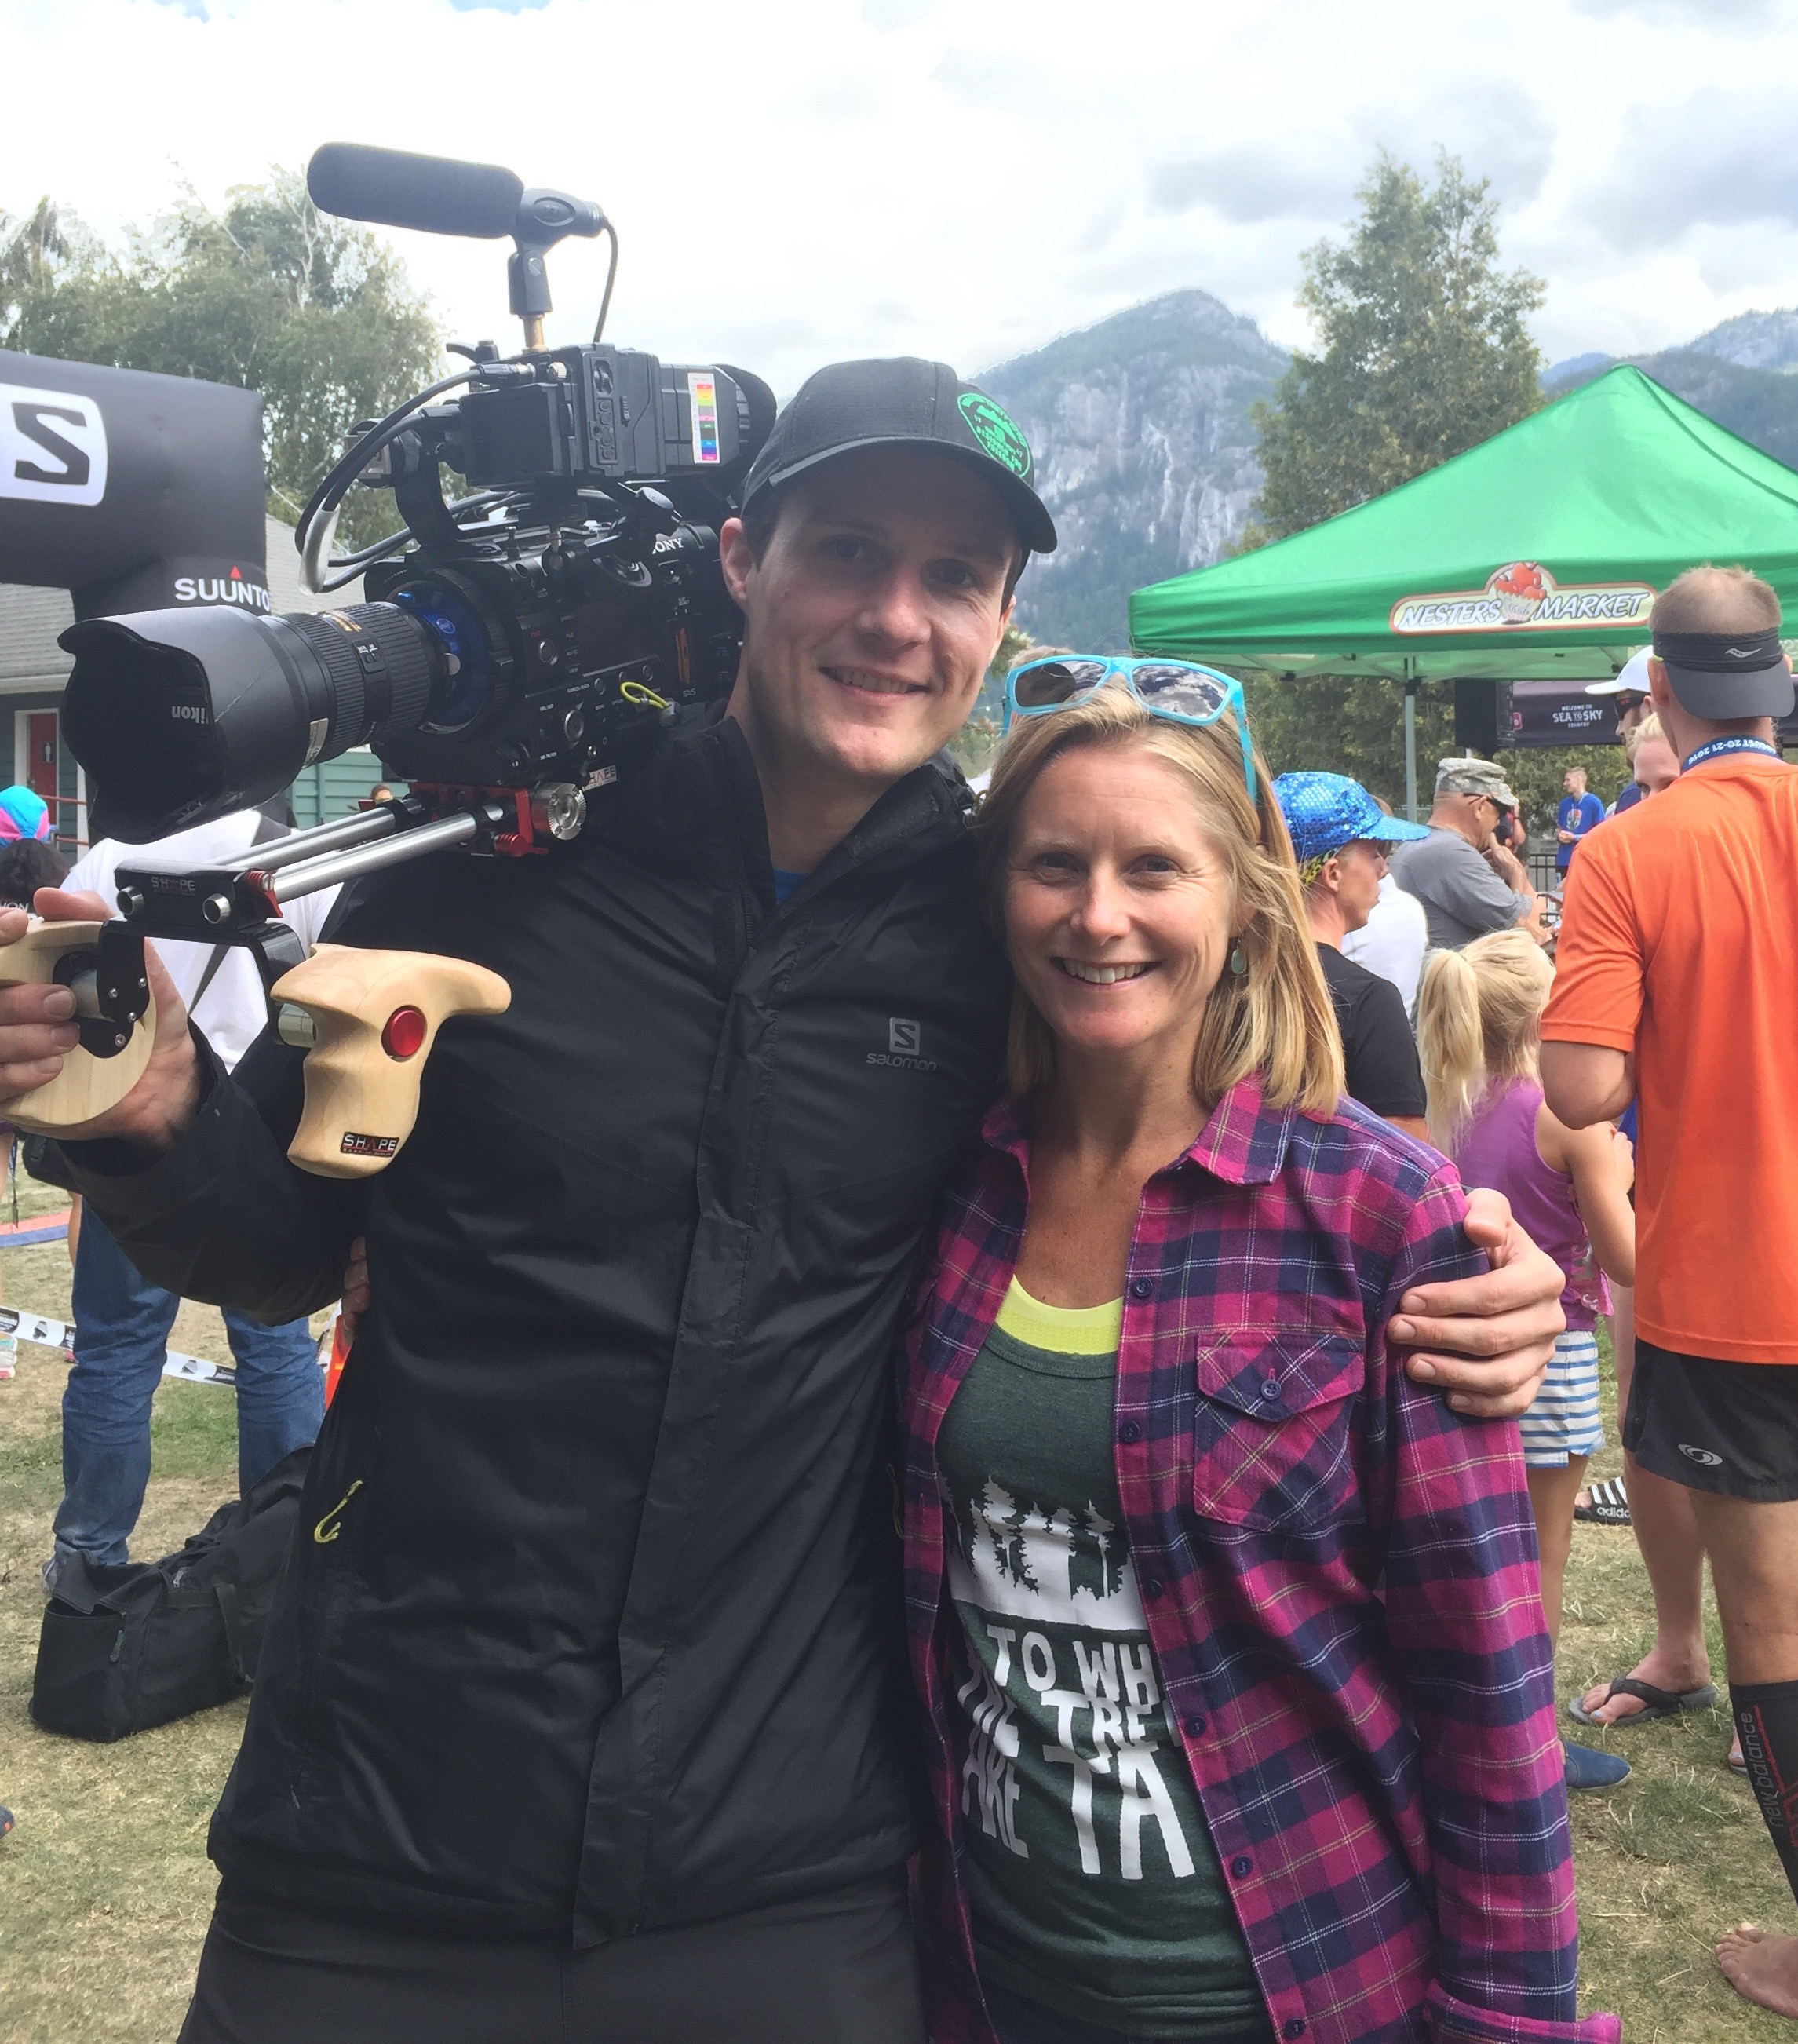 Filming at Squamish 50